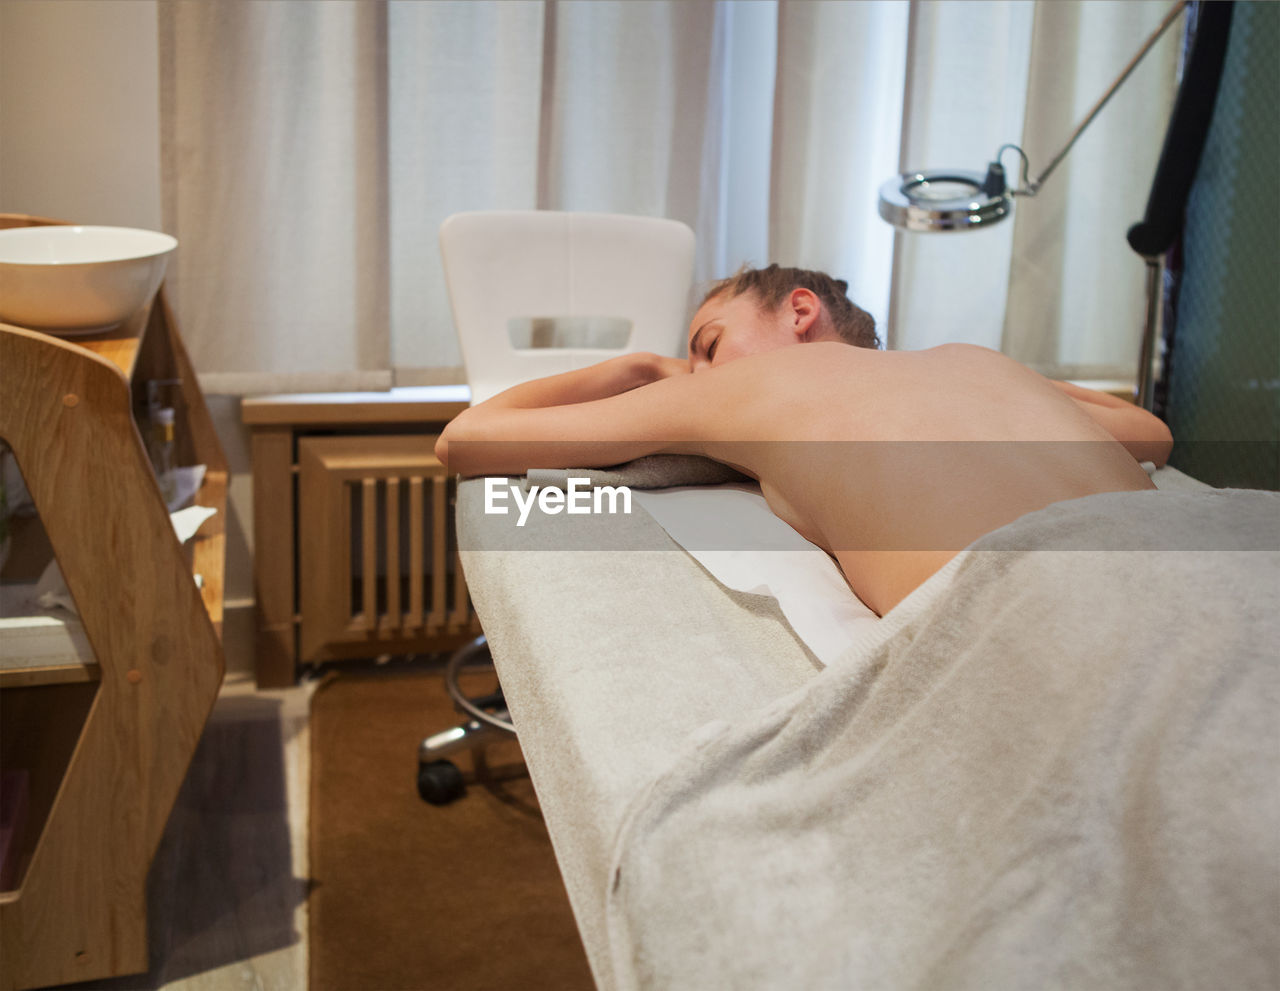 MIDSECTION OF MAN SITTING IN A ROOM